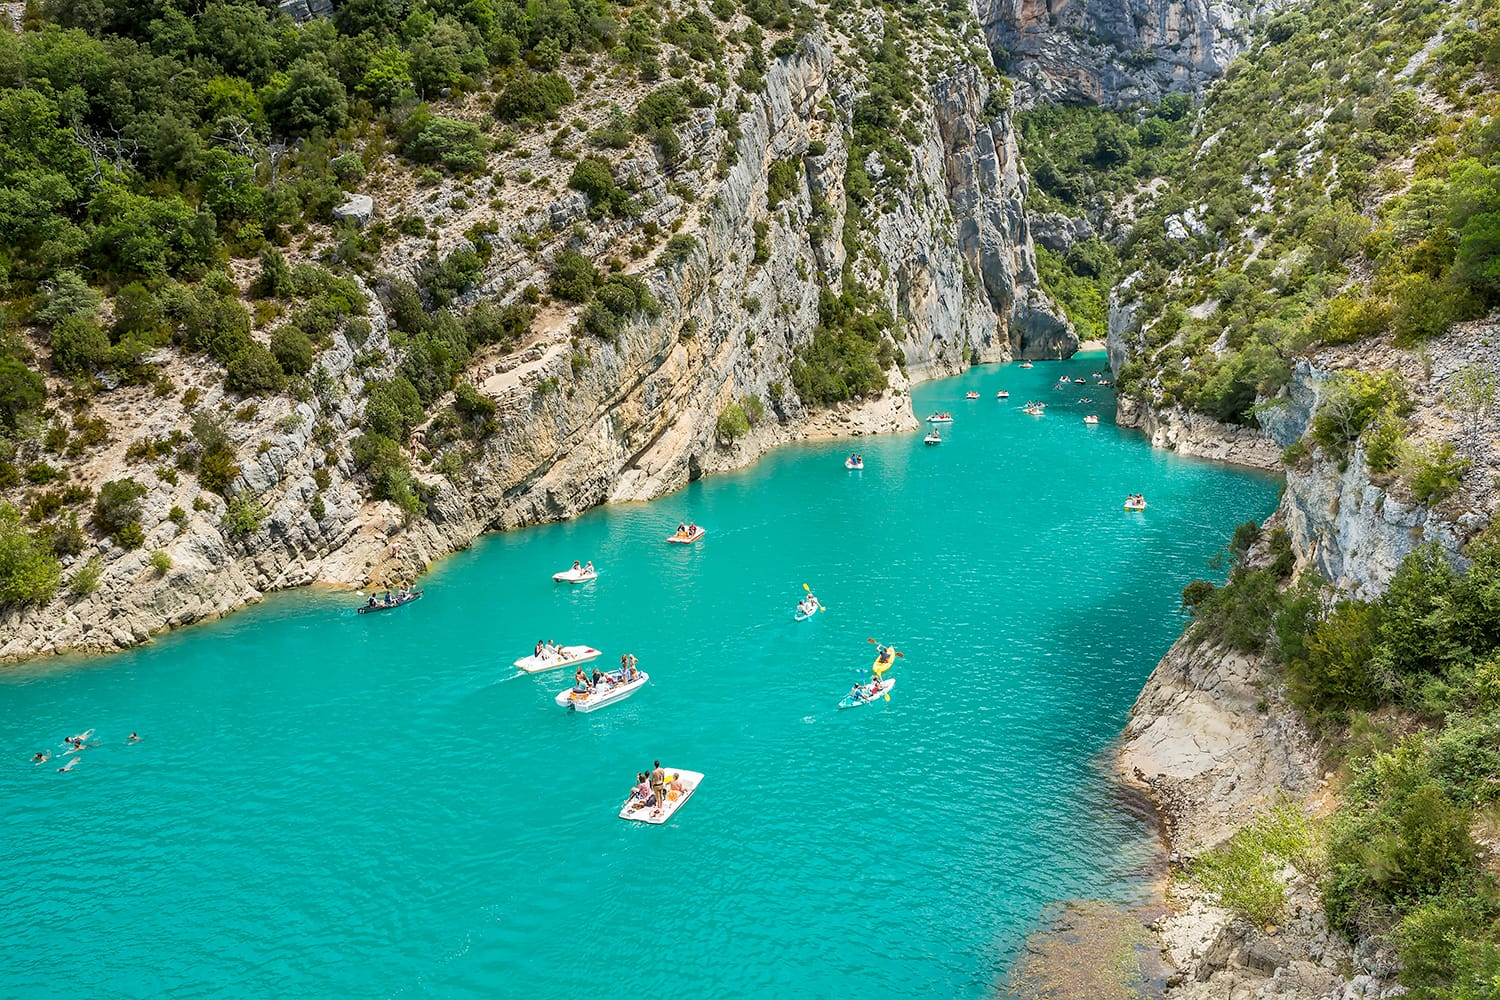 Gorges du Verdon in France